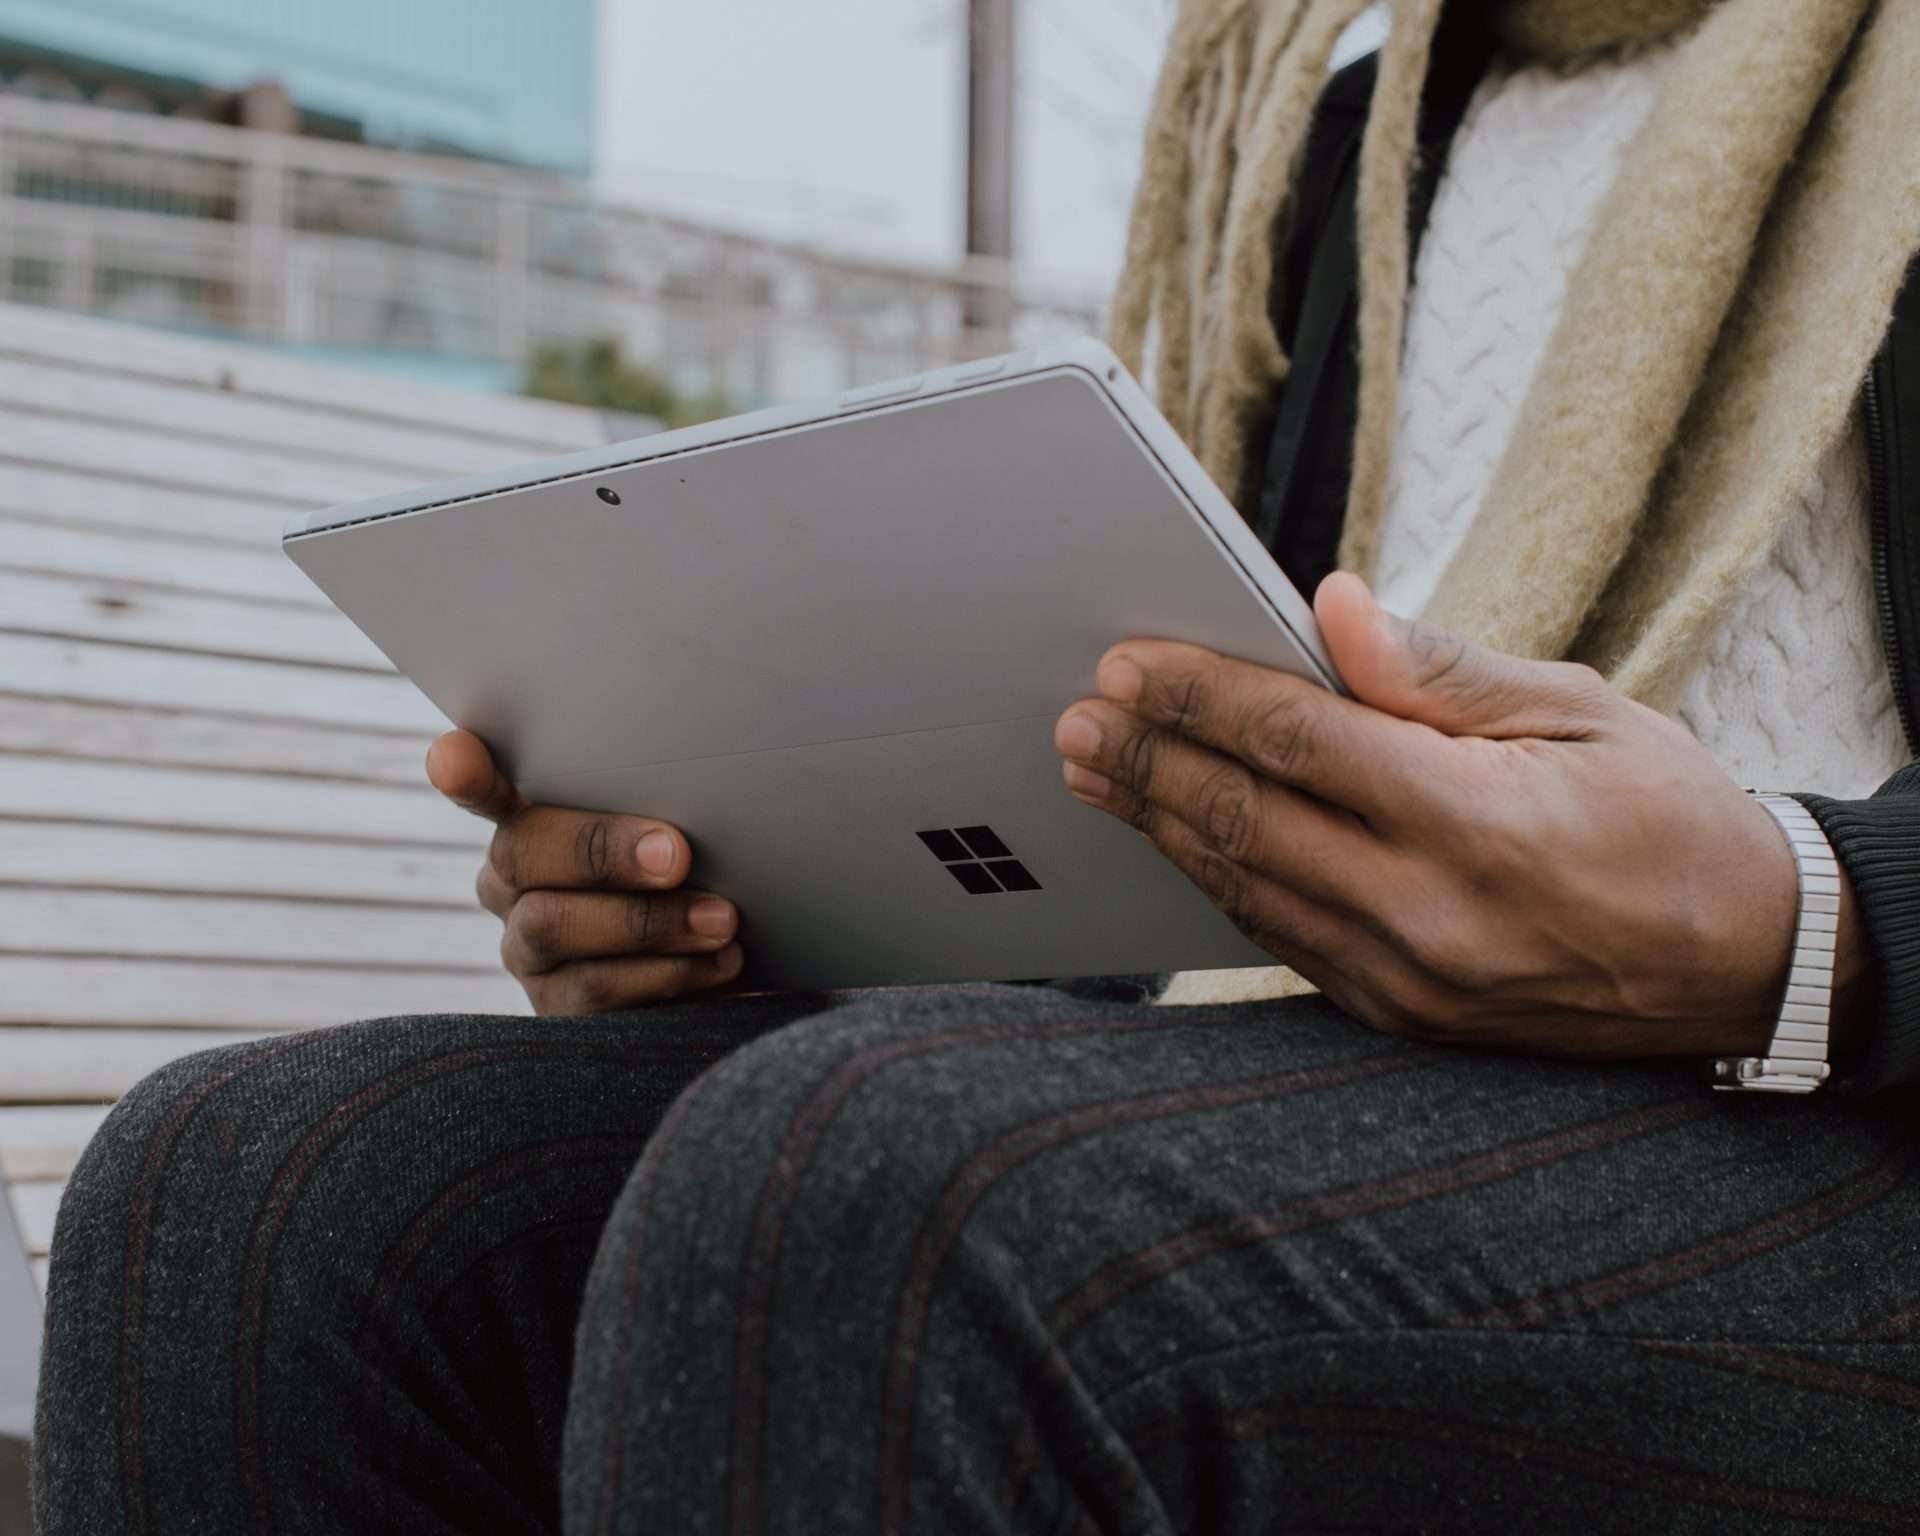 Person holding a Microsoft tablet